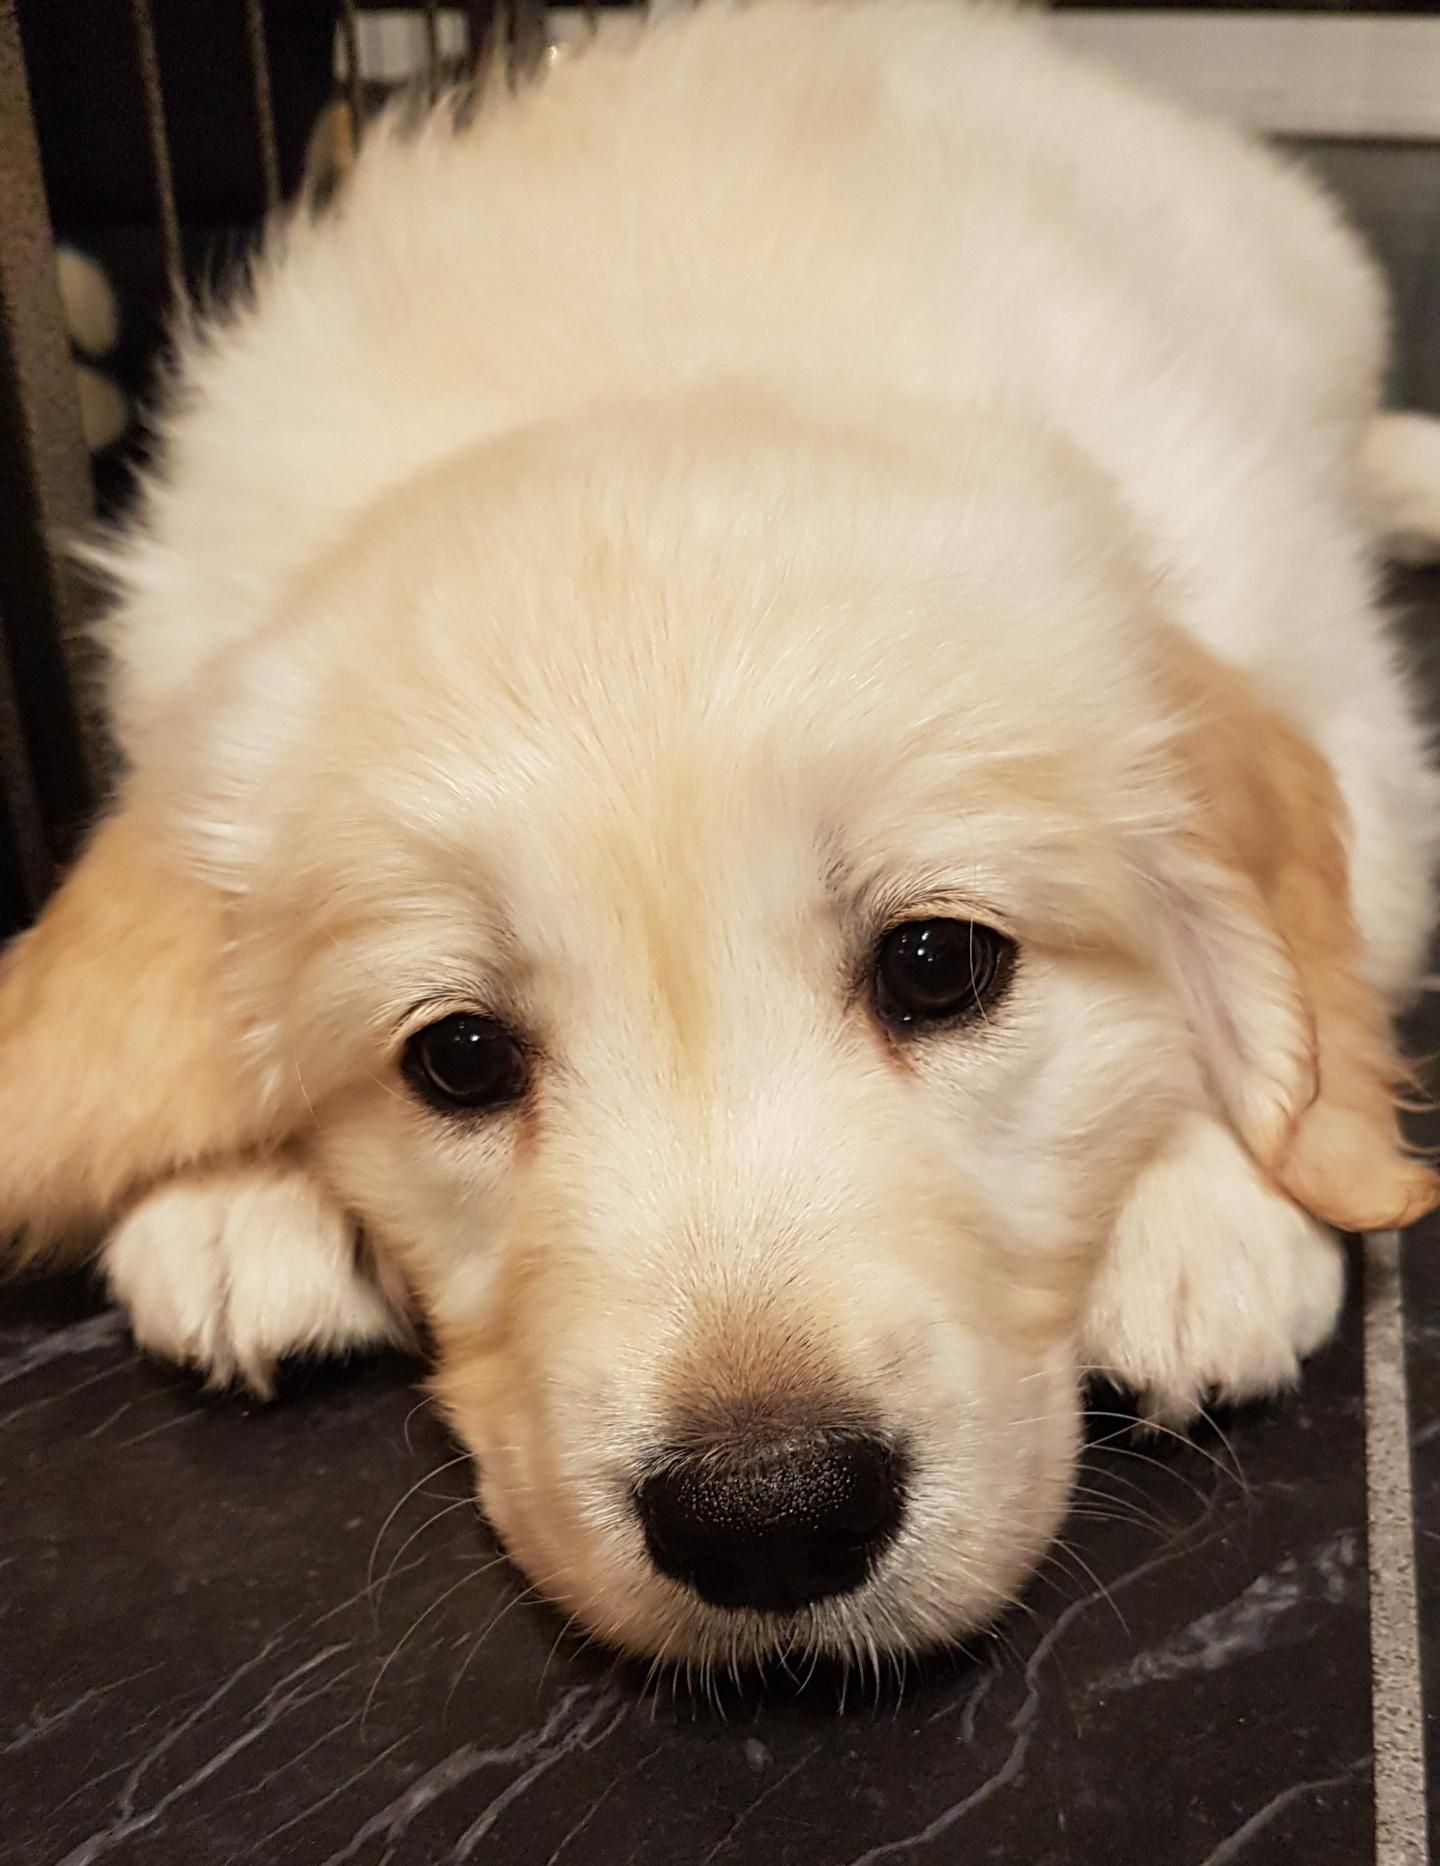 Bonzo S First Night Home Goldenretriever Cute Dogs And Puppies